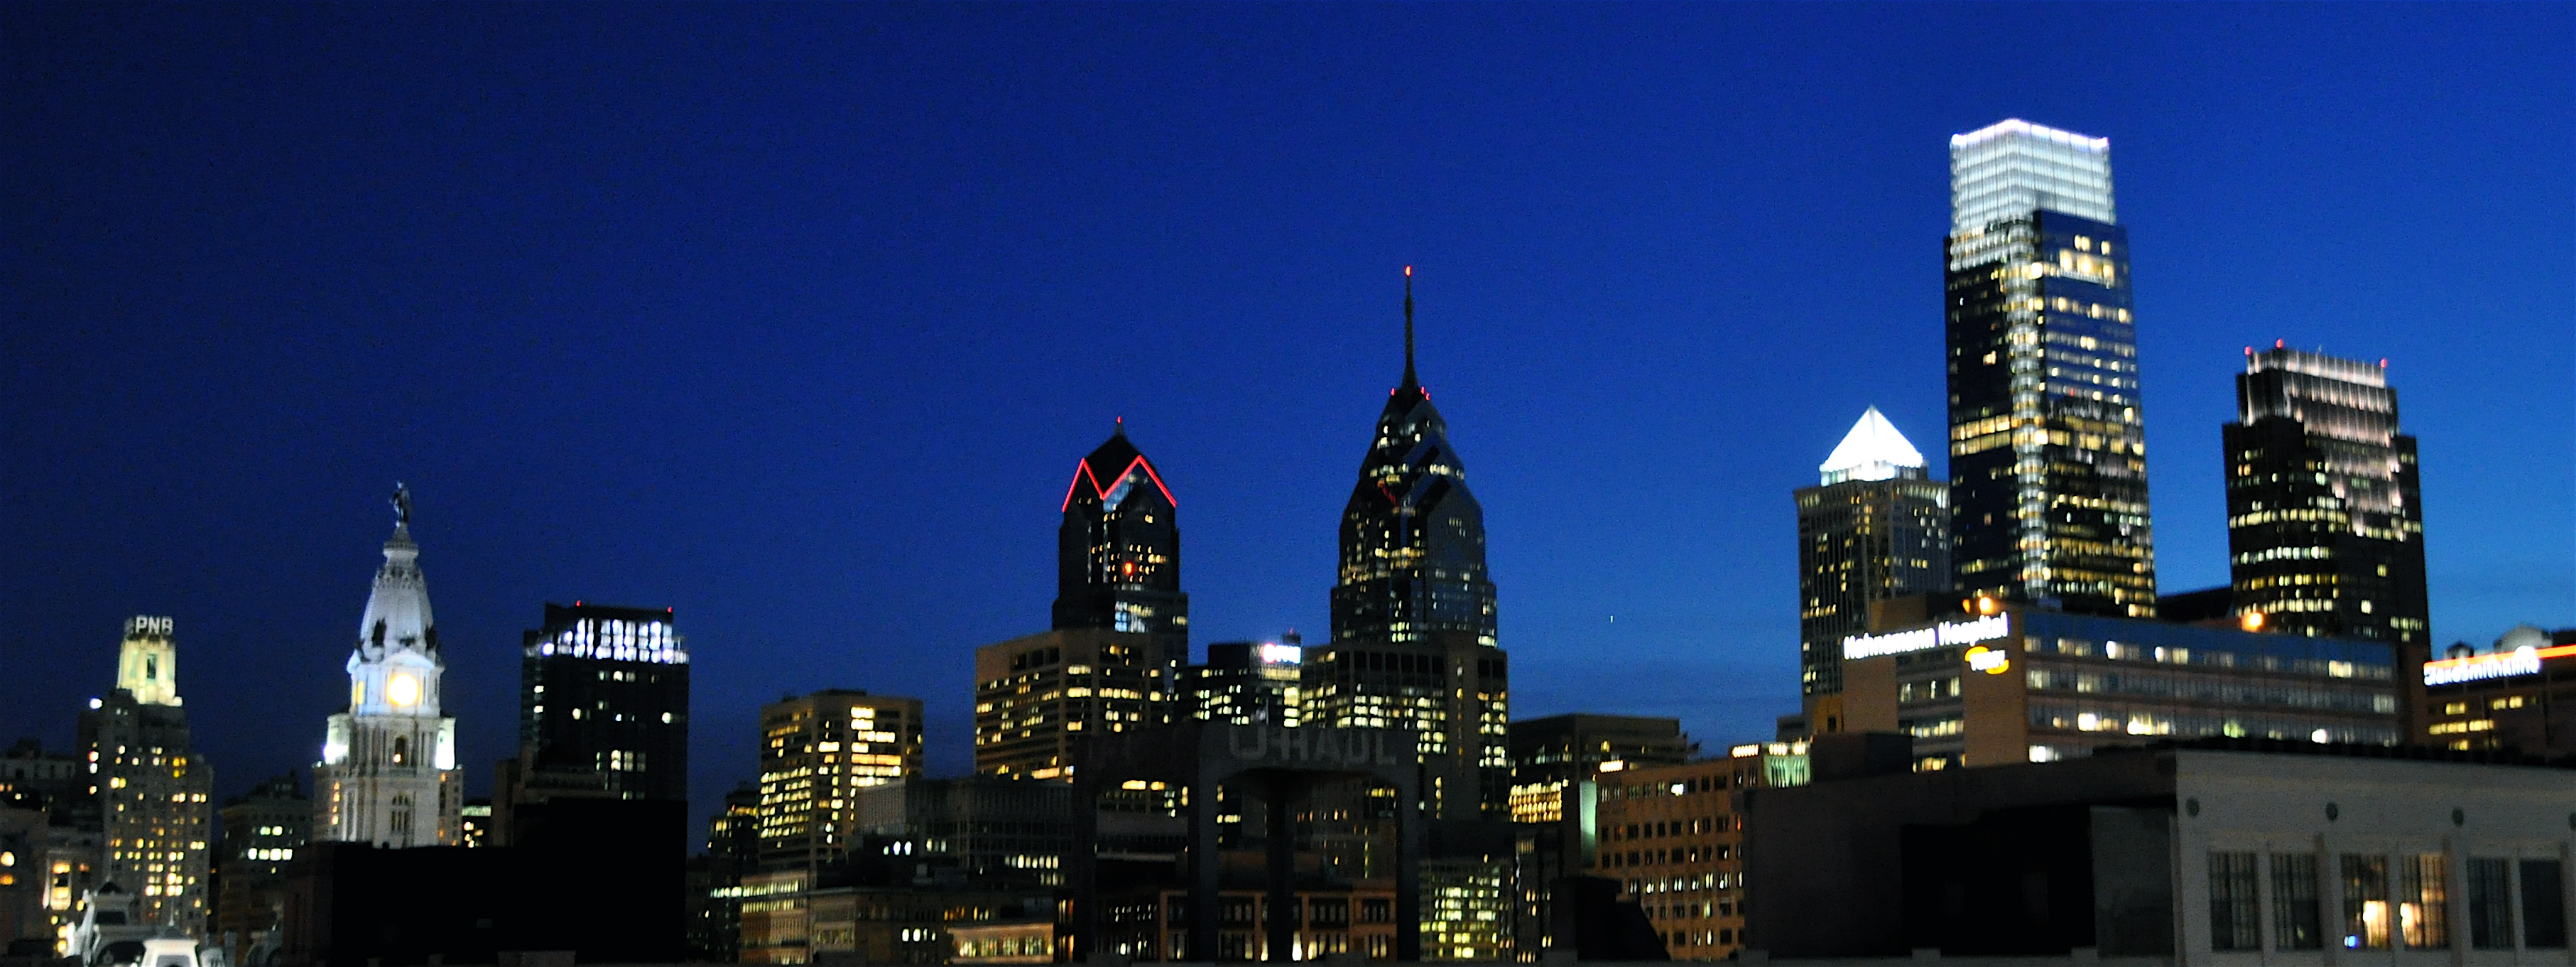 Philadelphia Skyline At Night City Hall